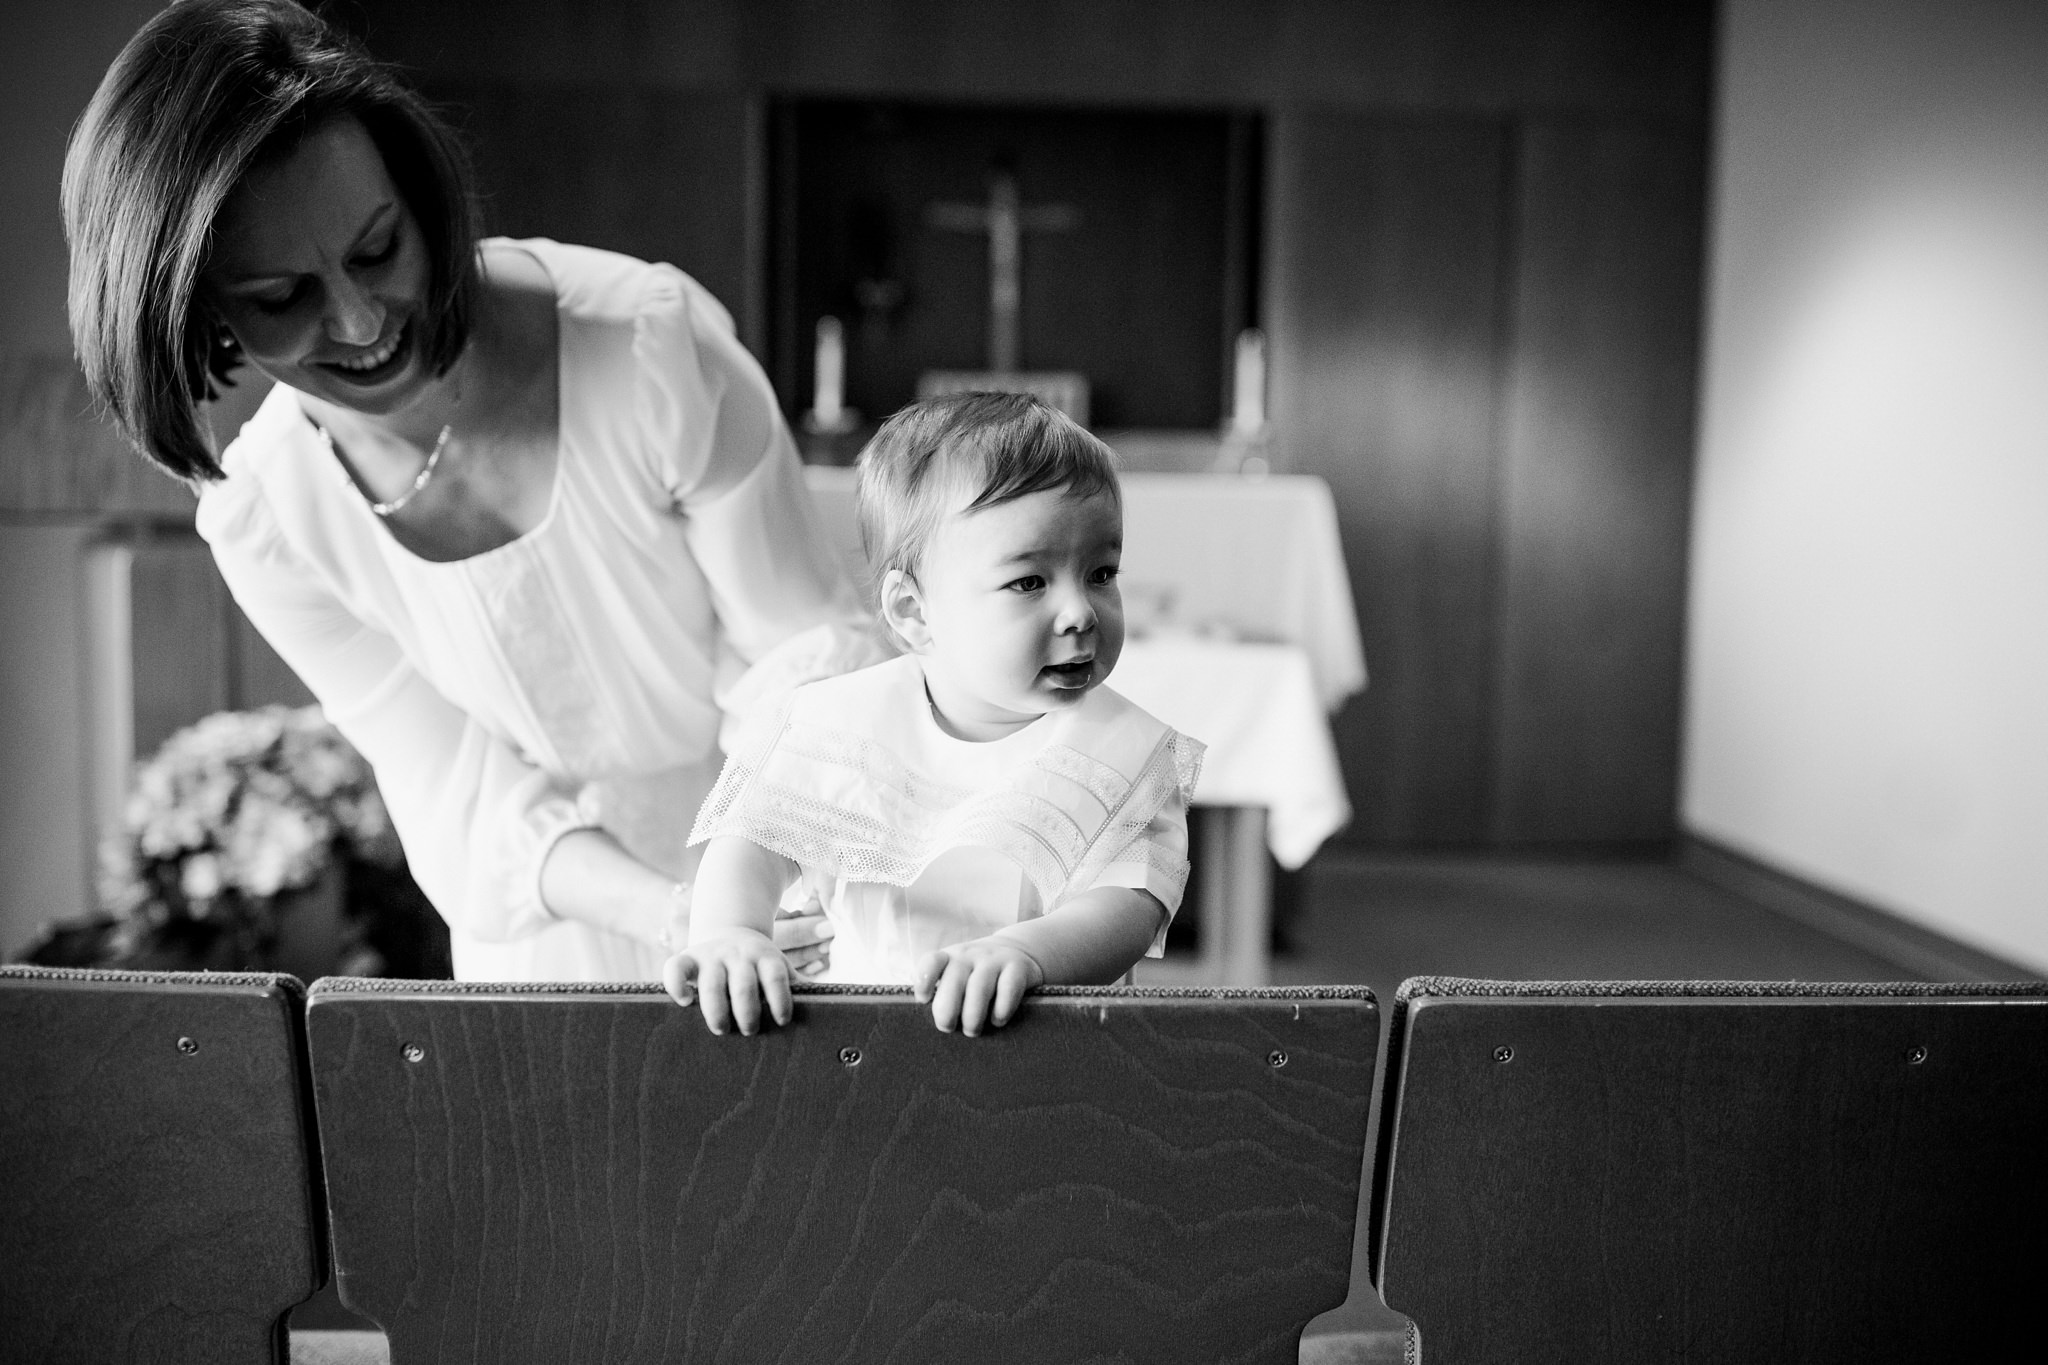 Whidbey-Island-Family-Photographer-Kara-Chappell-Photography_1821.jpg